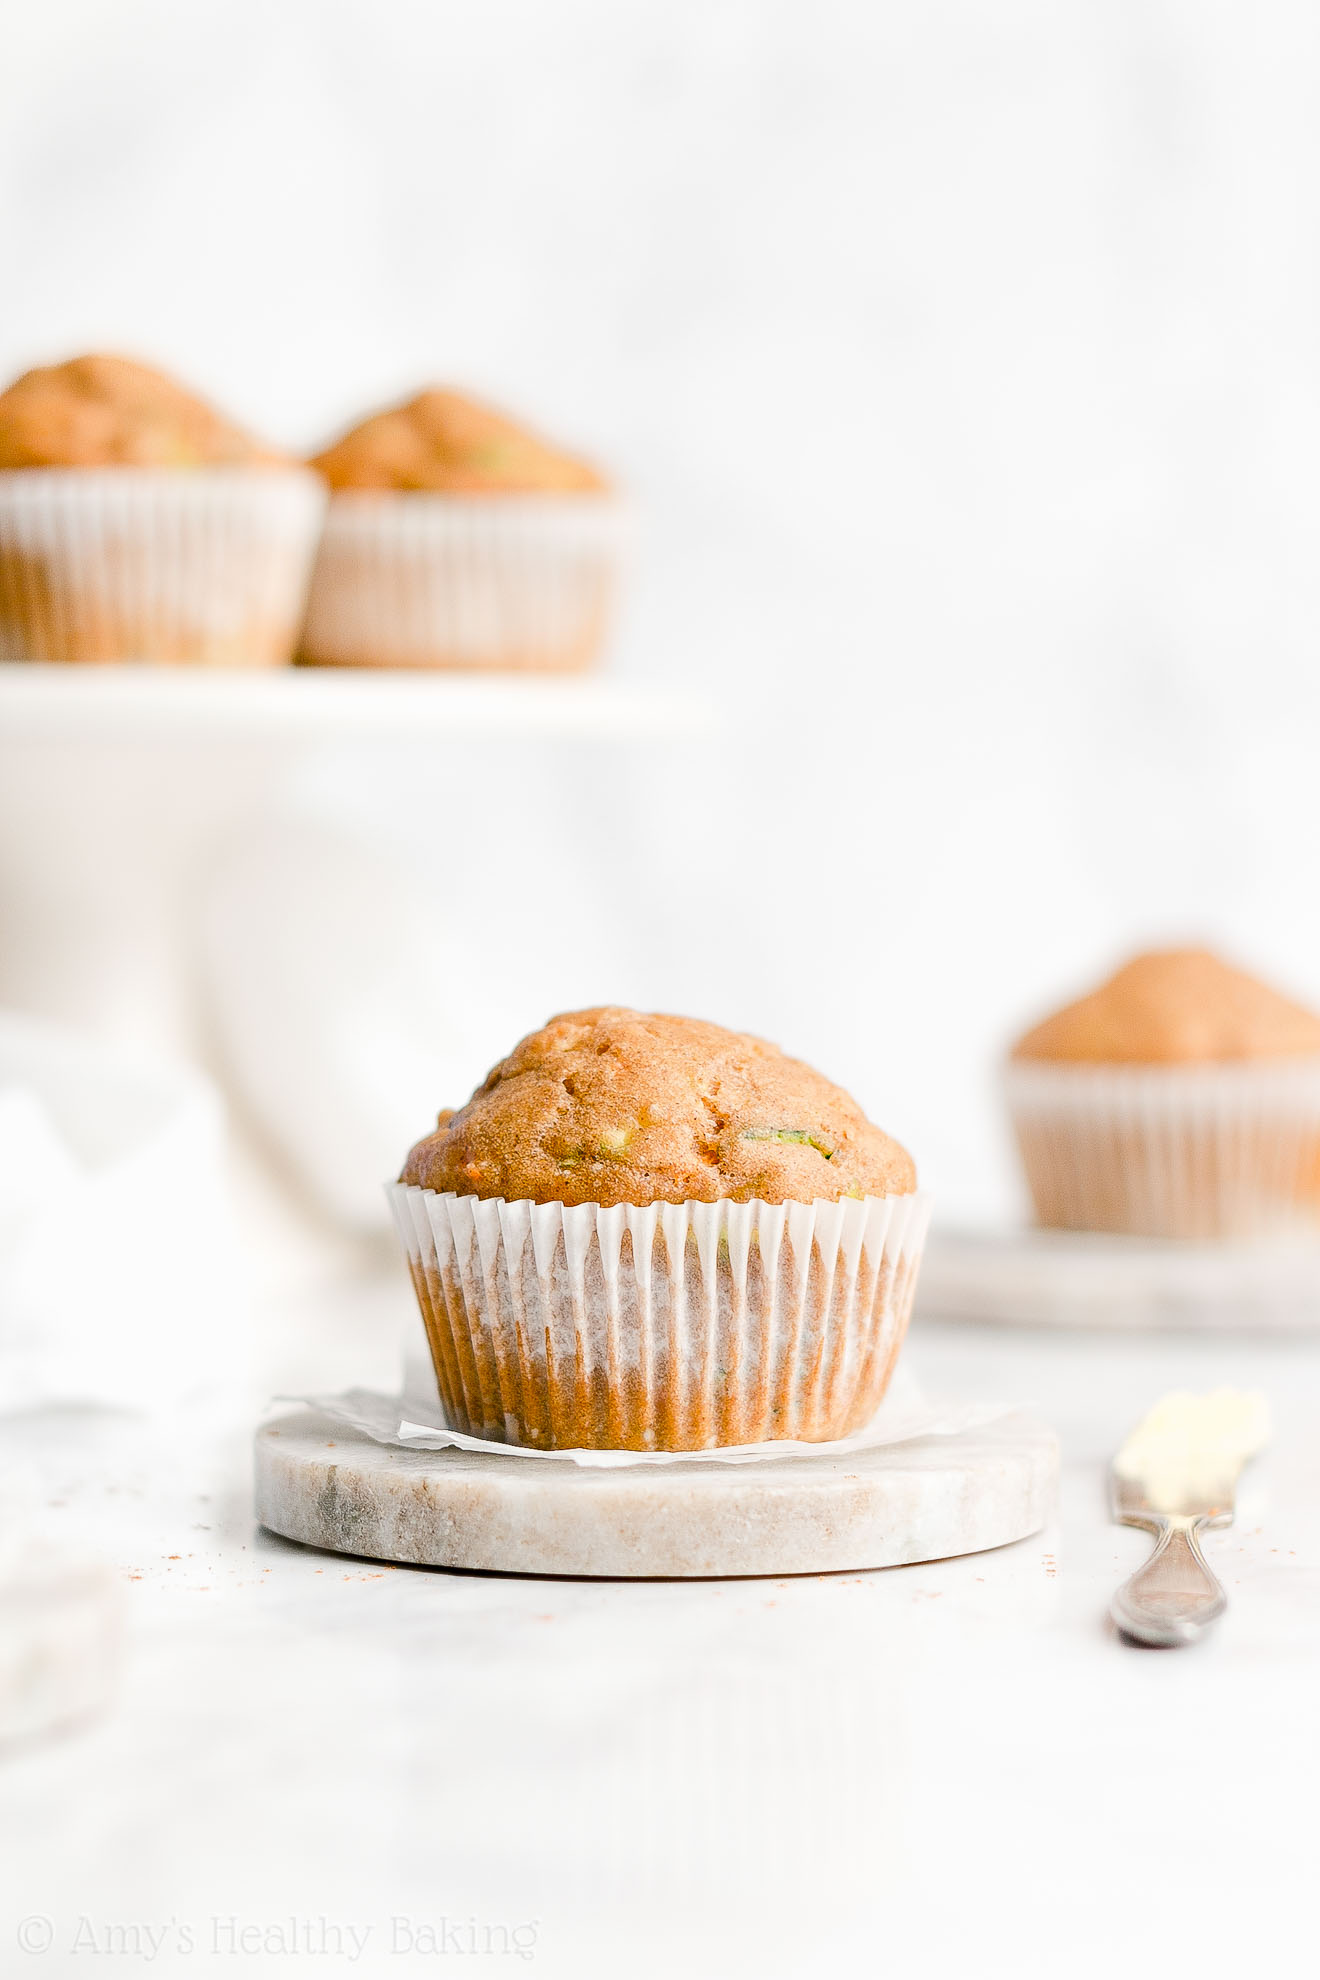 Easy Healthy Clean Eating Whole Wheat Moist Spiced Carrot Zucchini Muffins